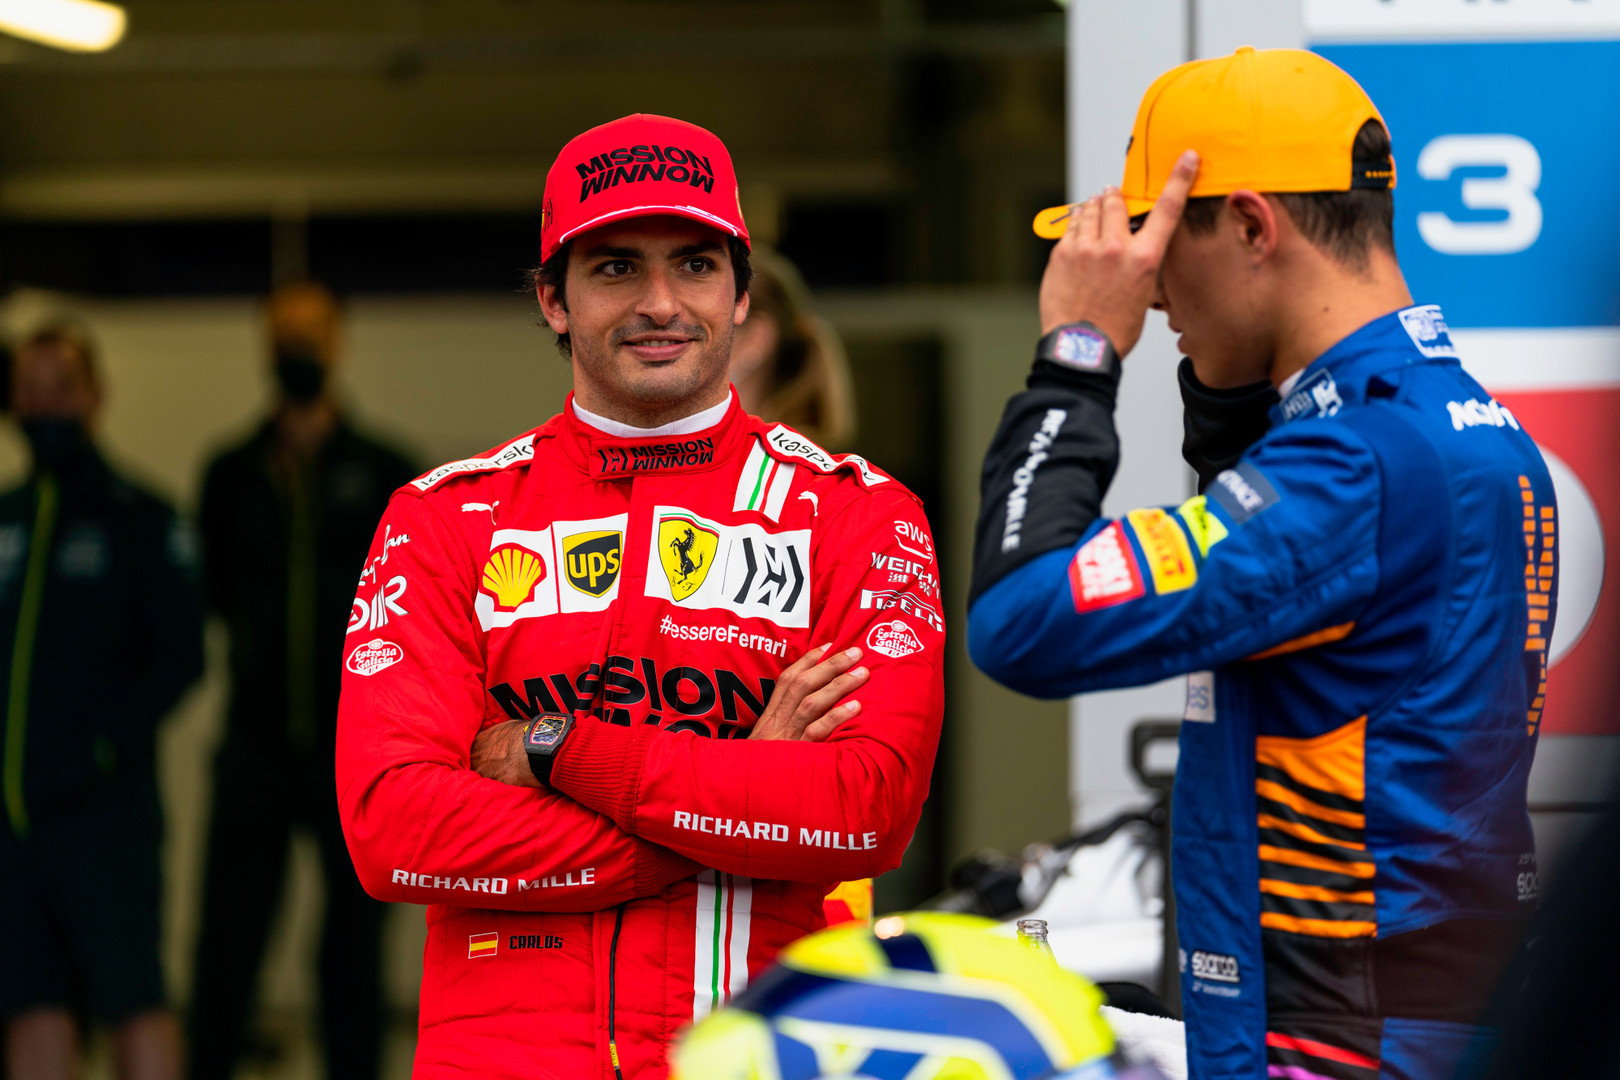 Sainz hopes to work with Norris to 'pull away' in Sochi